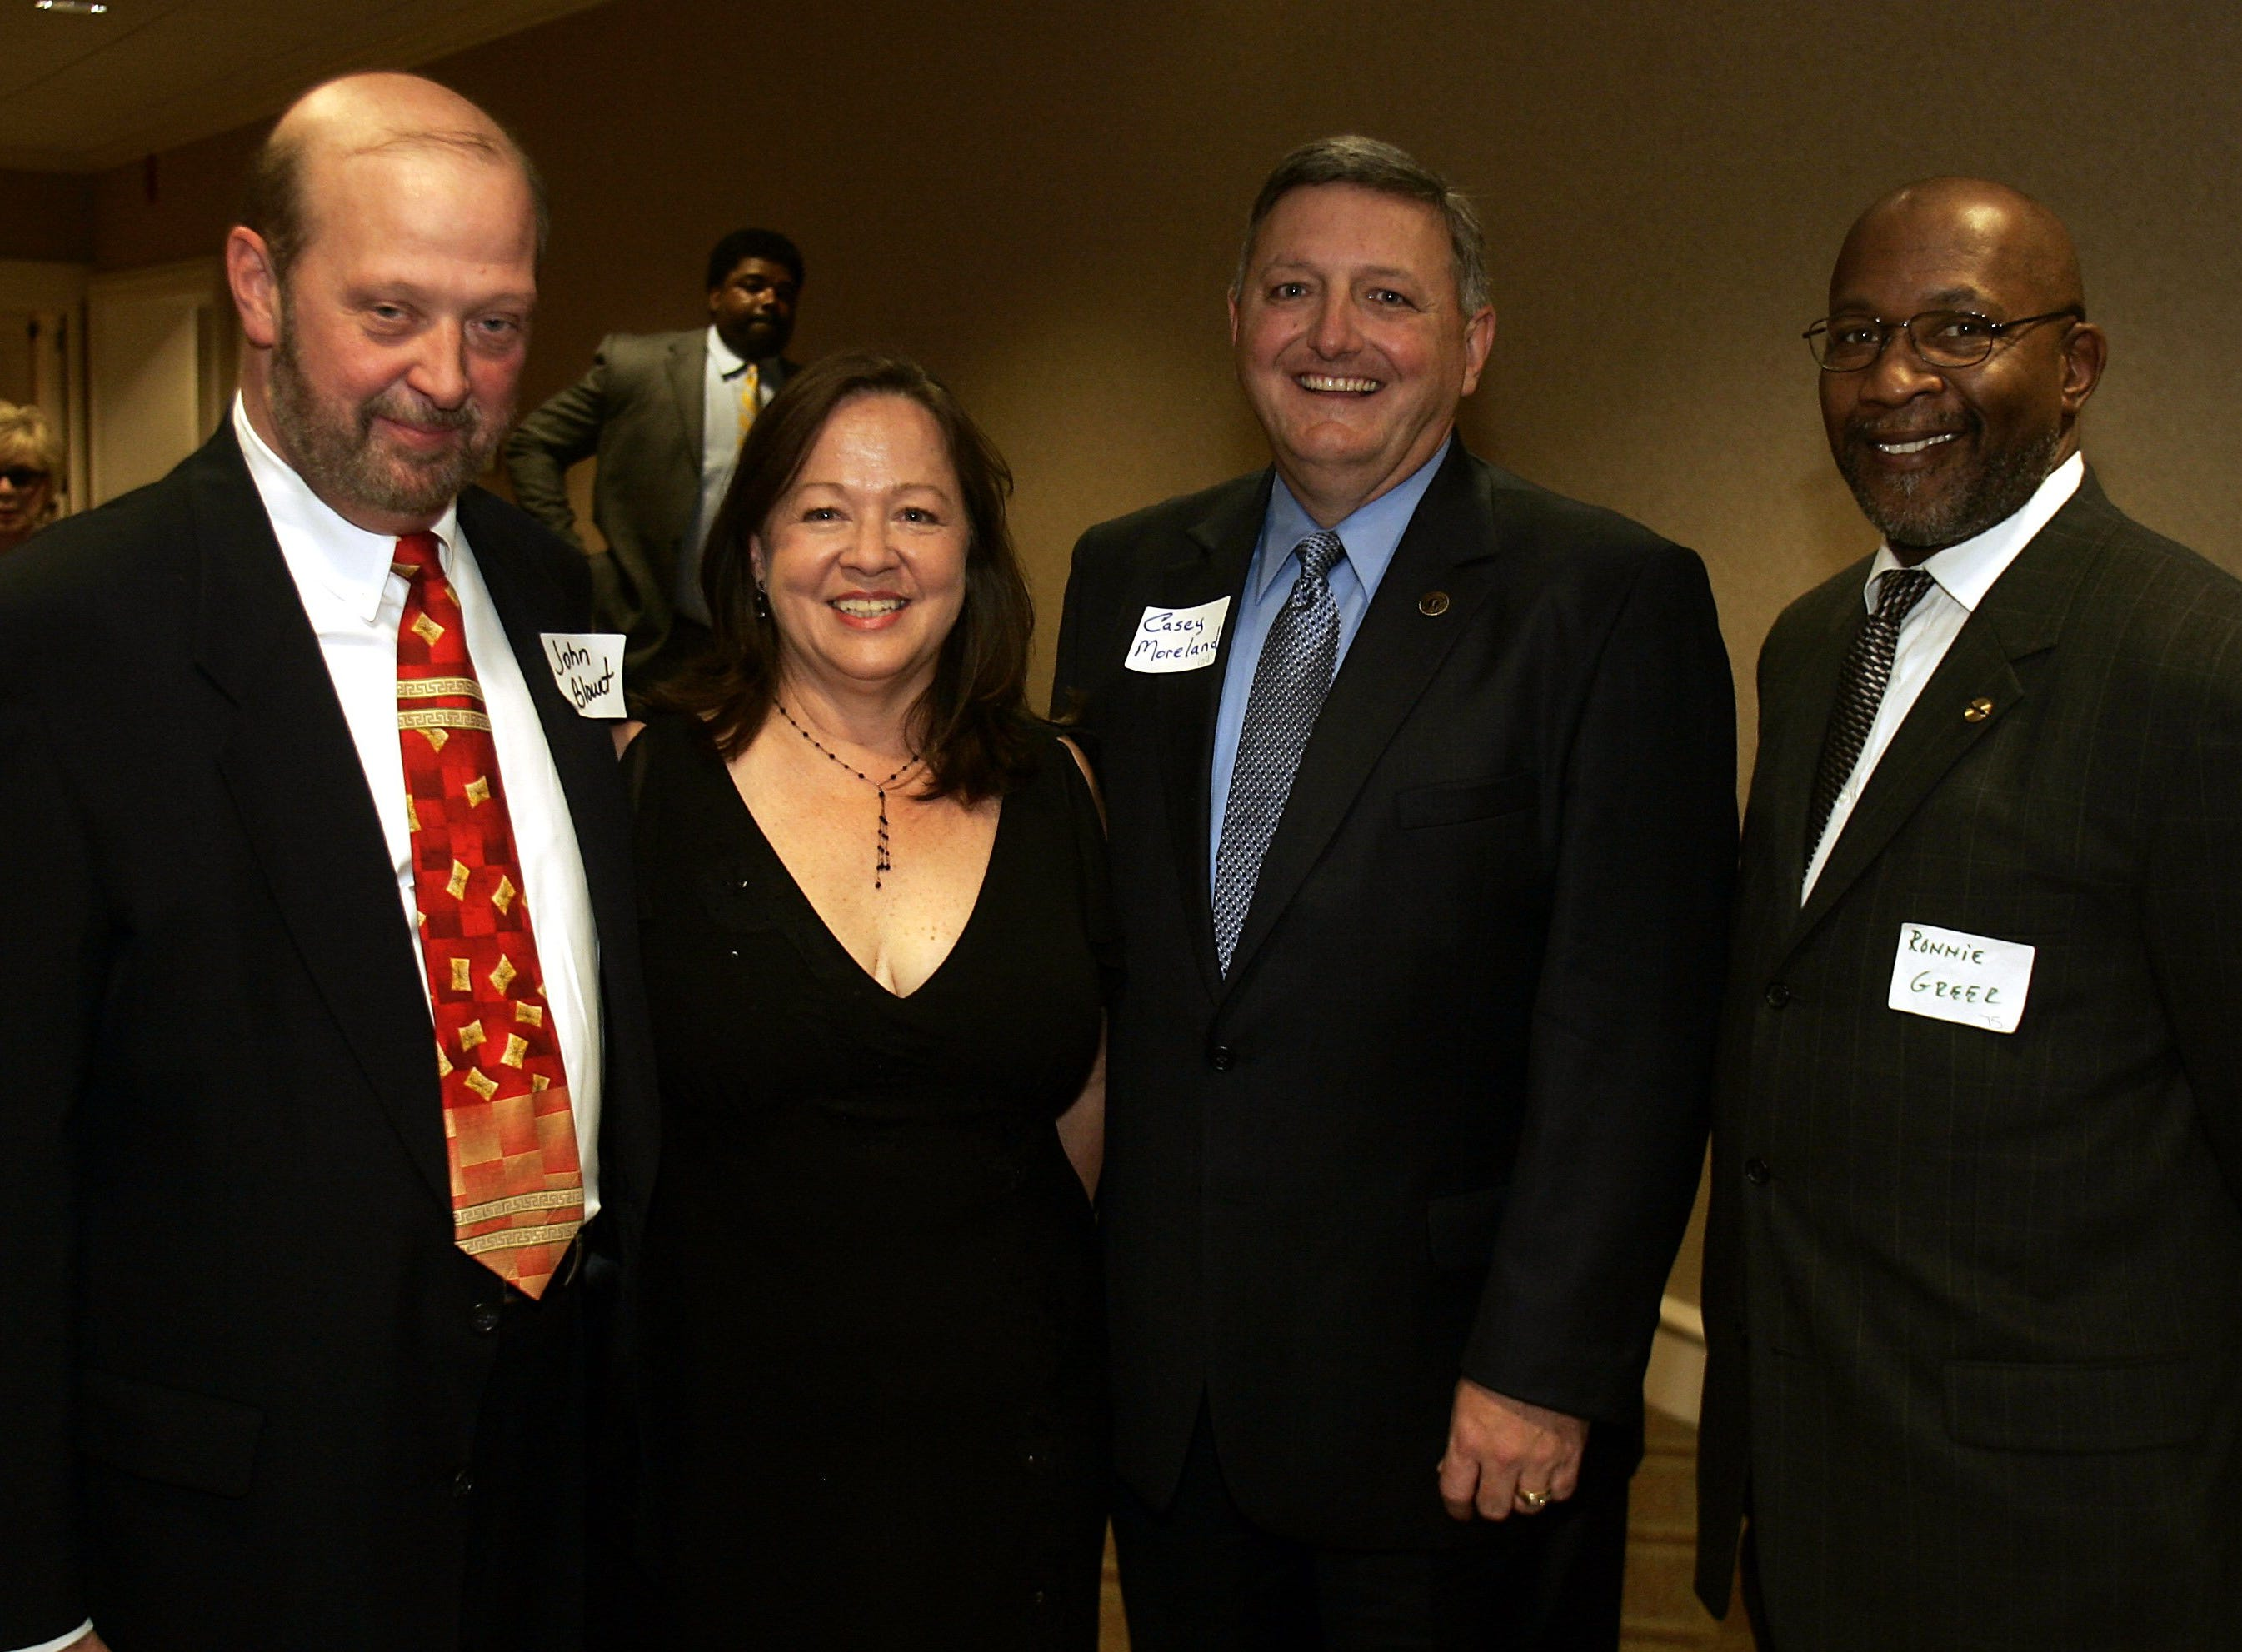 John Blount, Nan Casey, Casey Moreland  and Ronnie Greer attend an Alcohol and Drug Council of Middle Tennessee fundraising event May 25, 2006.